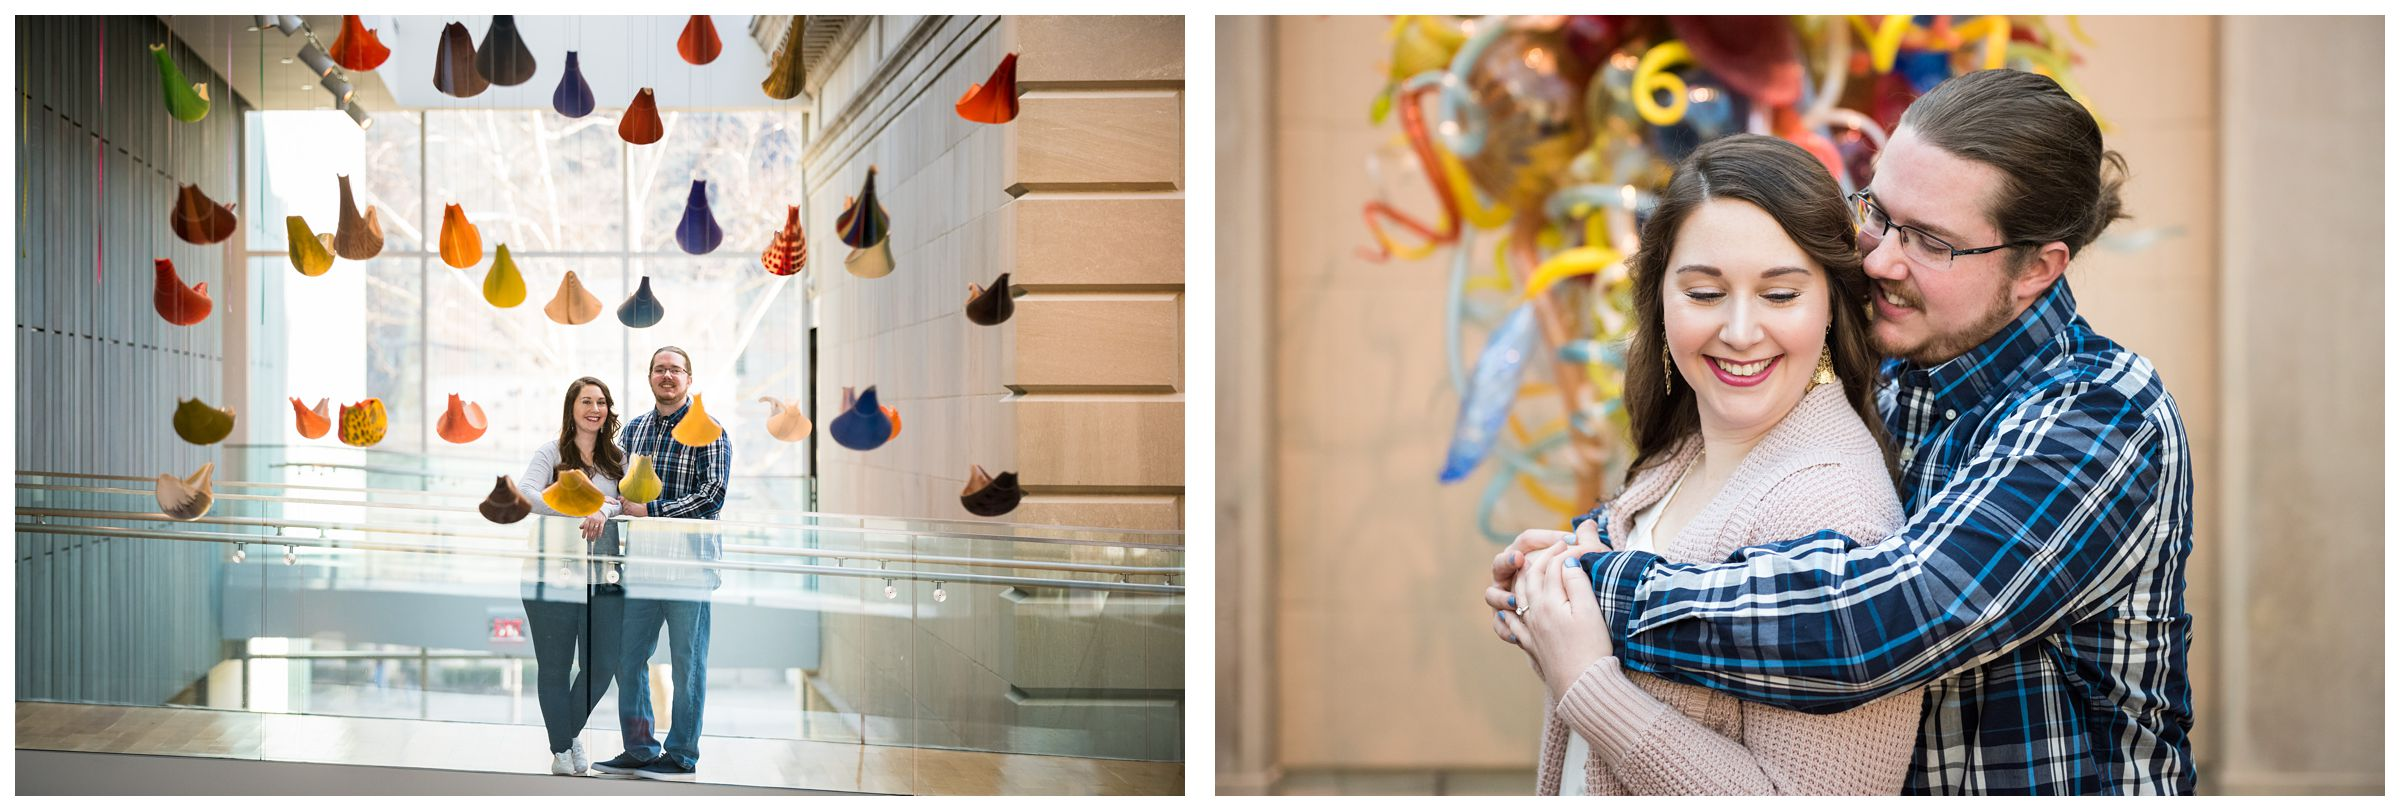 Engagement photo session in front of colorful glass Chihuly sculptures at the Columbus Museum of Art